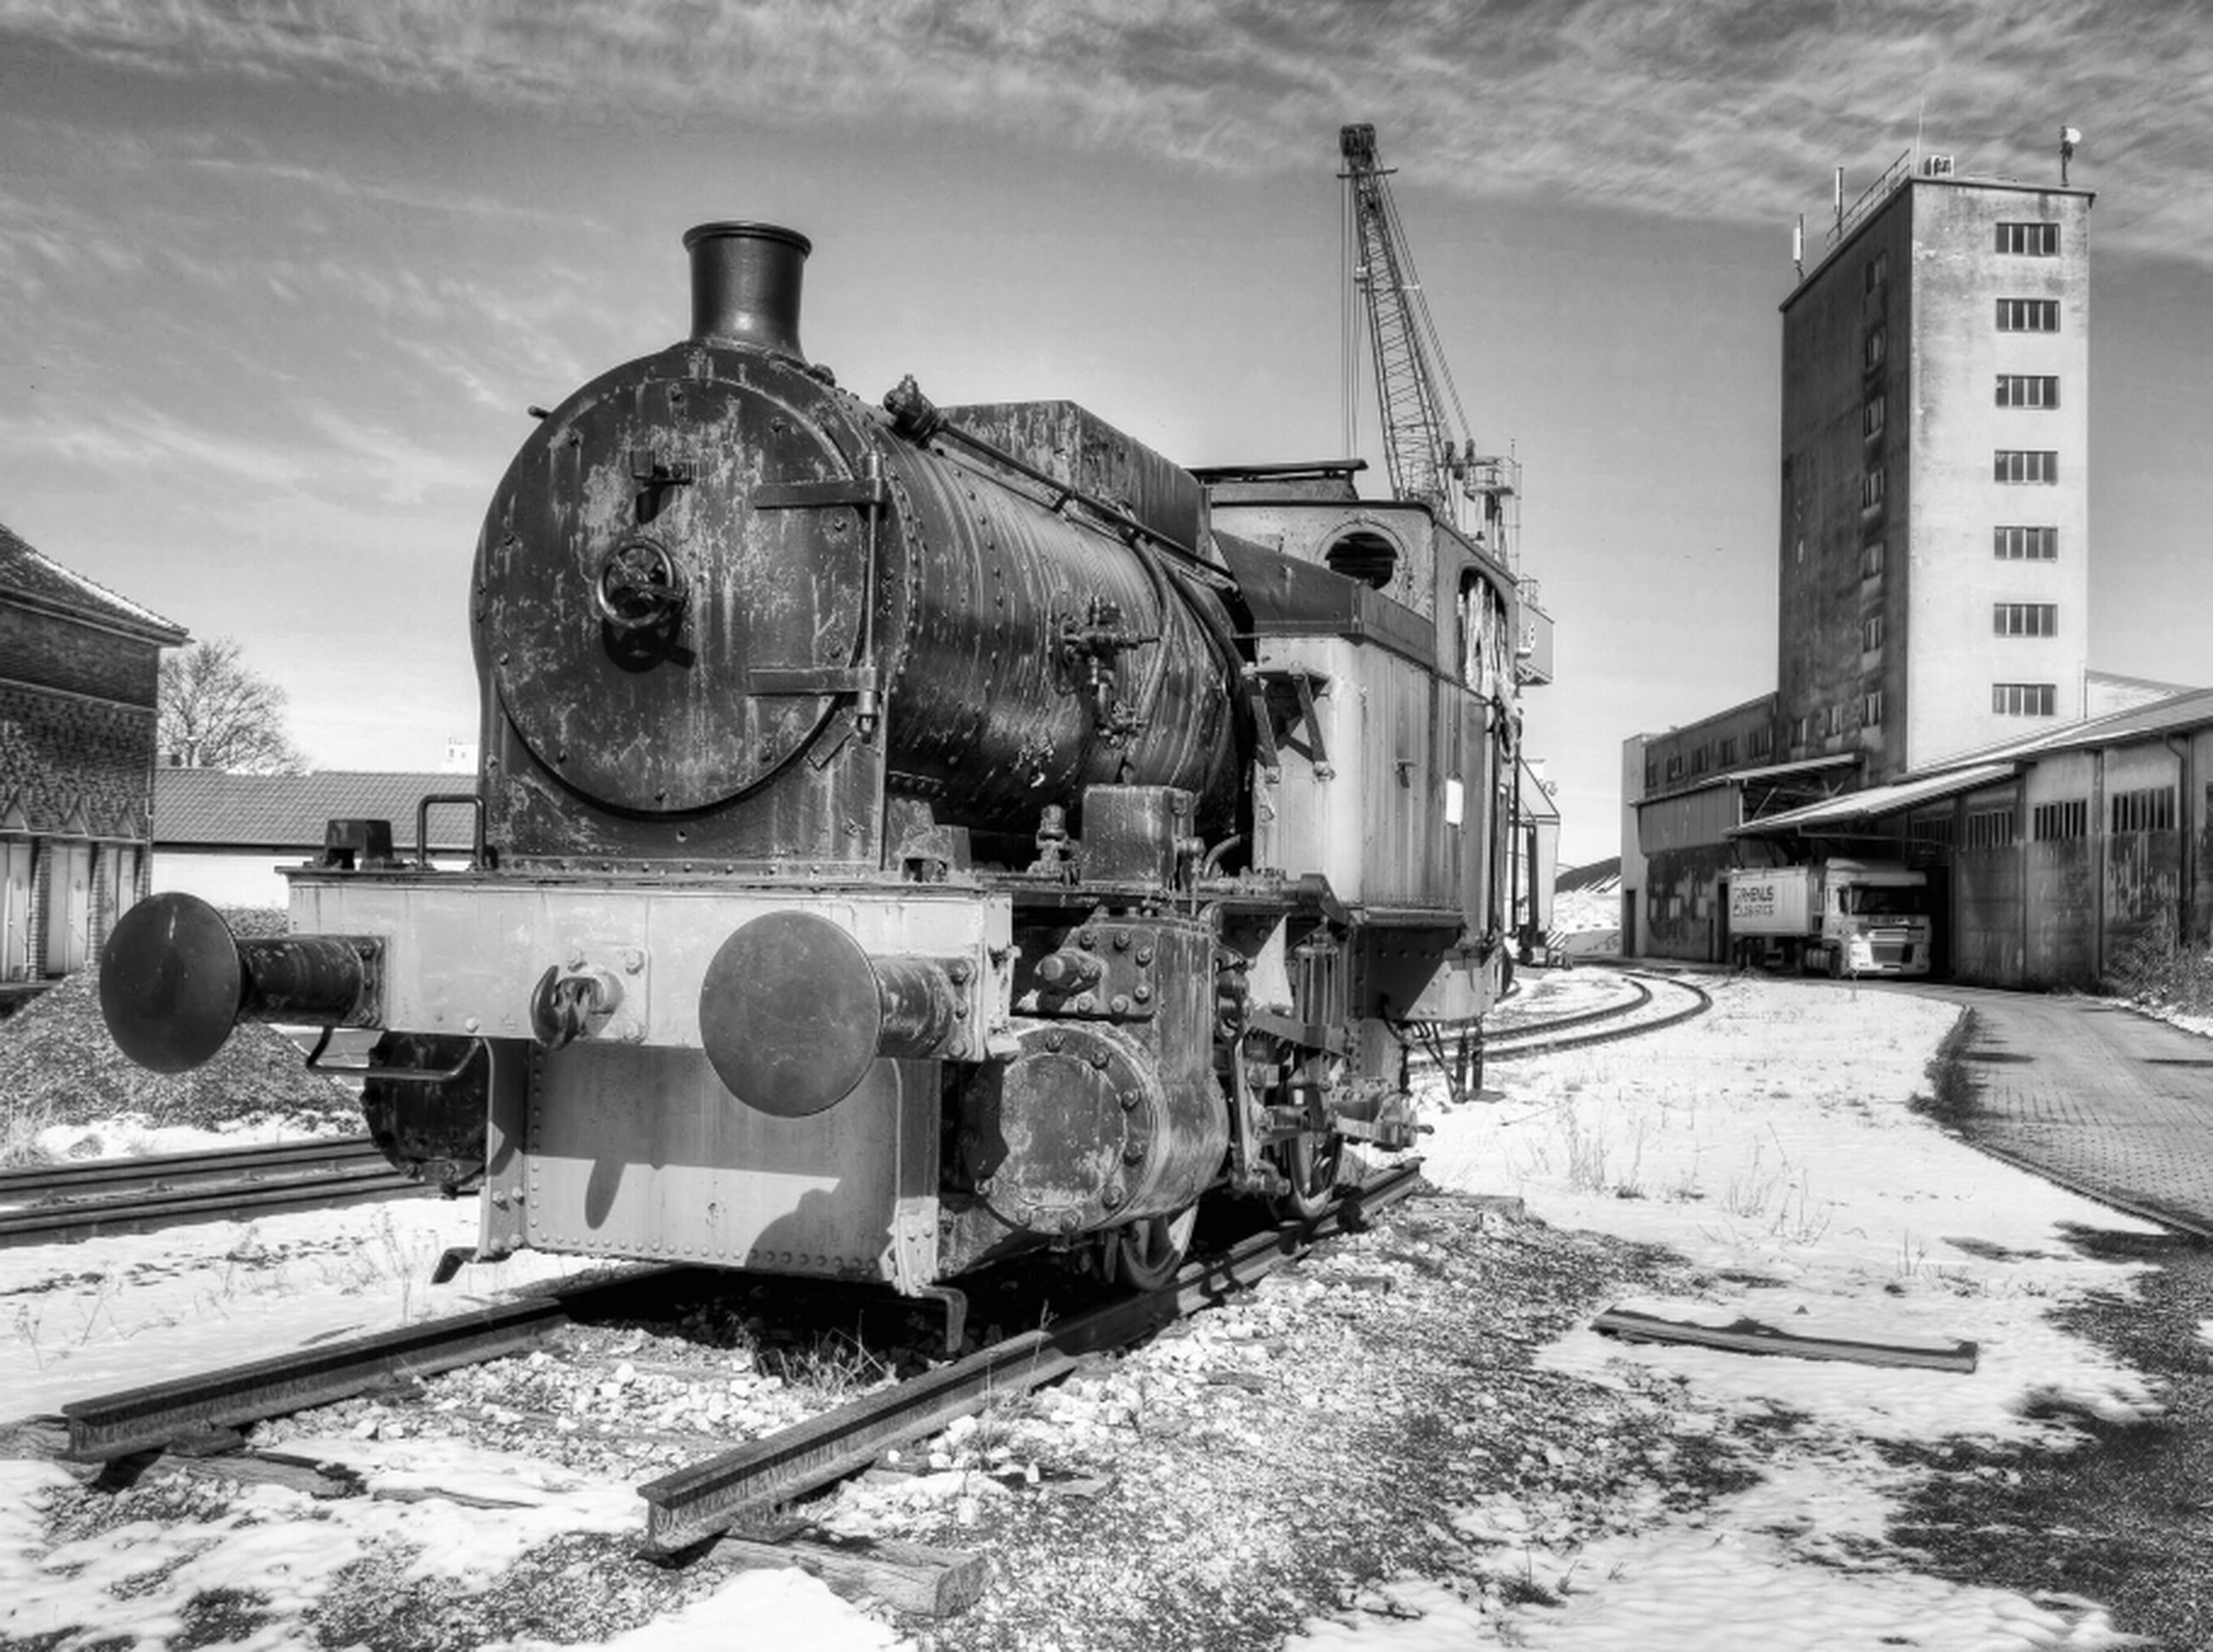 transportation, railroad track, built structure, building exterior, architecture, mode of transport, public transportation, rail transportation, train - vehicle, sky, industry, day, factory, outdoors, machinery, fuel and power generation, no people, metal, technology, land vehicle